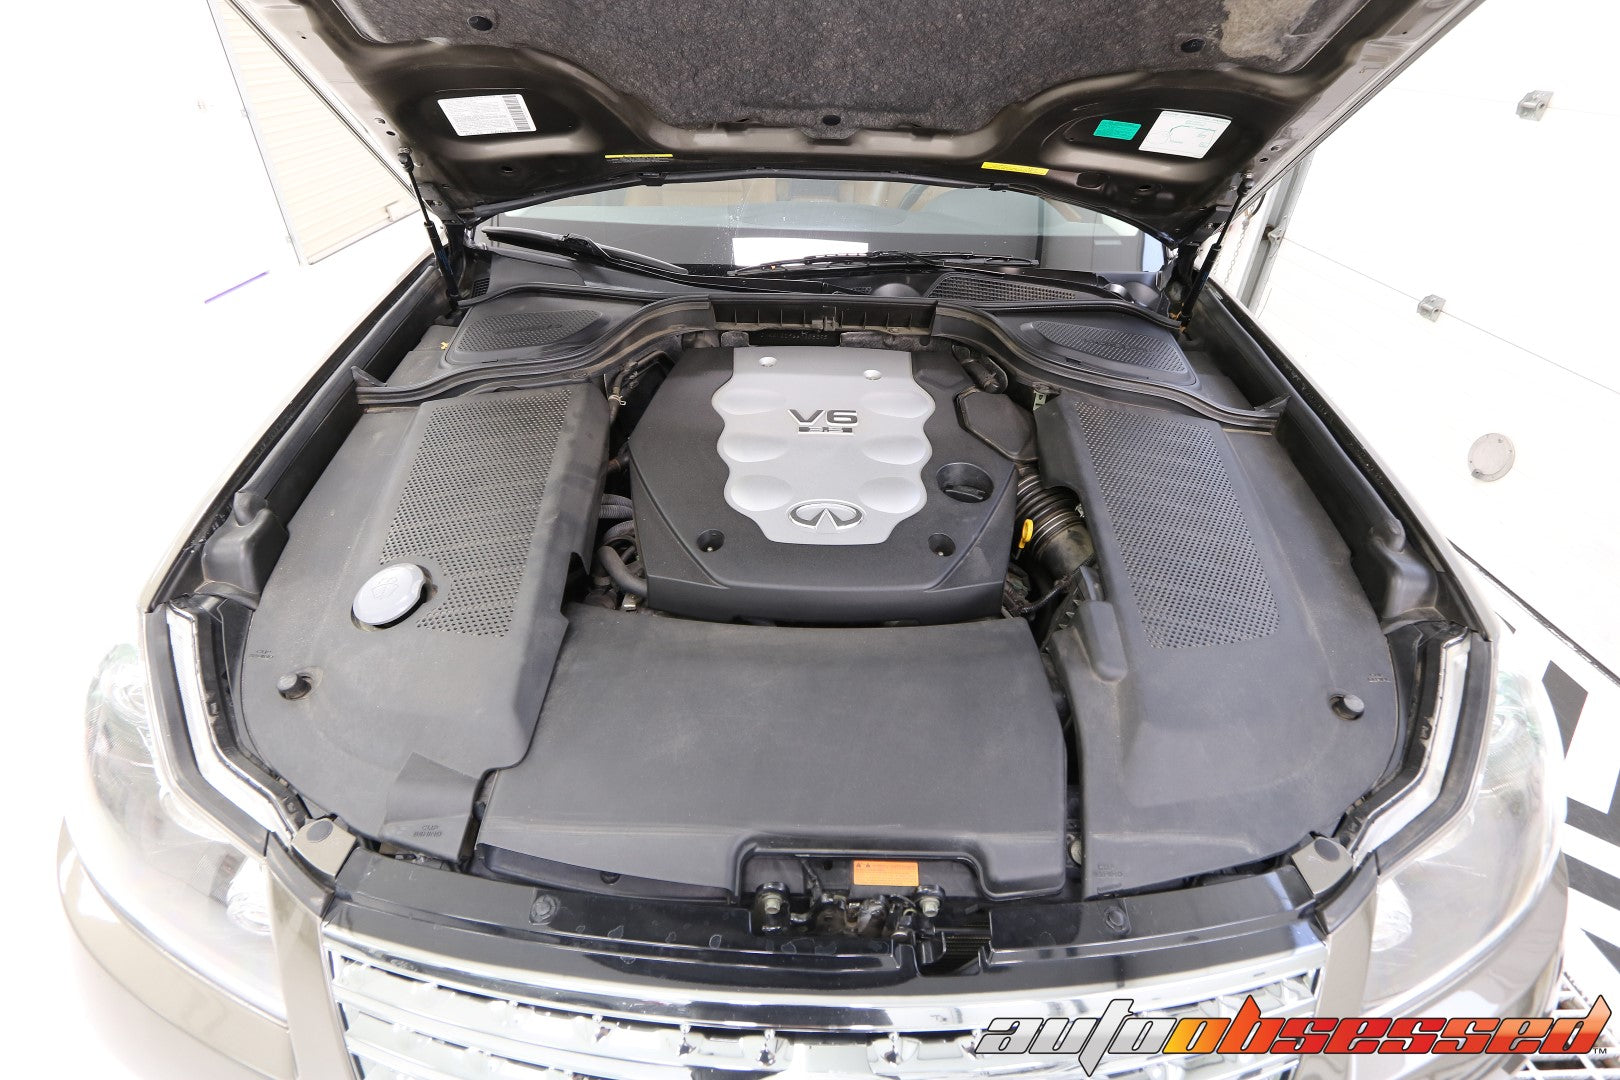 2006 Infinity M35x Engine Bay - Auto Obsessed